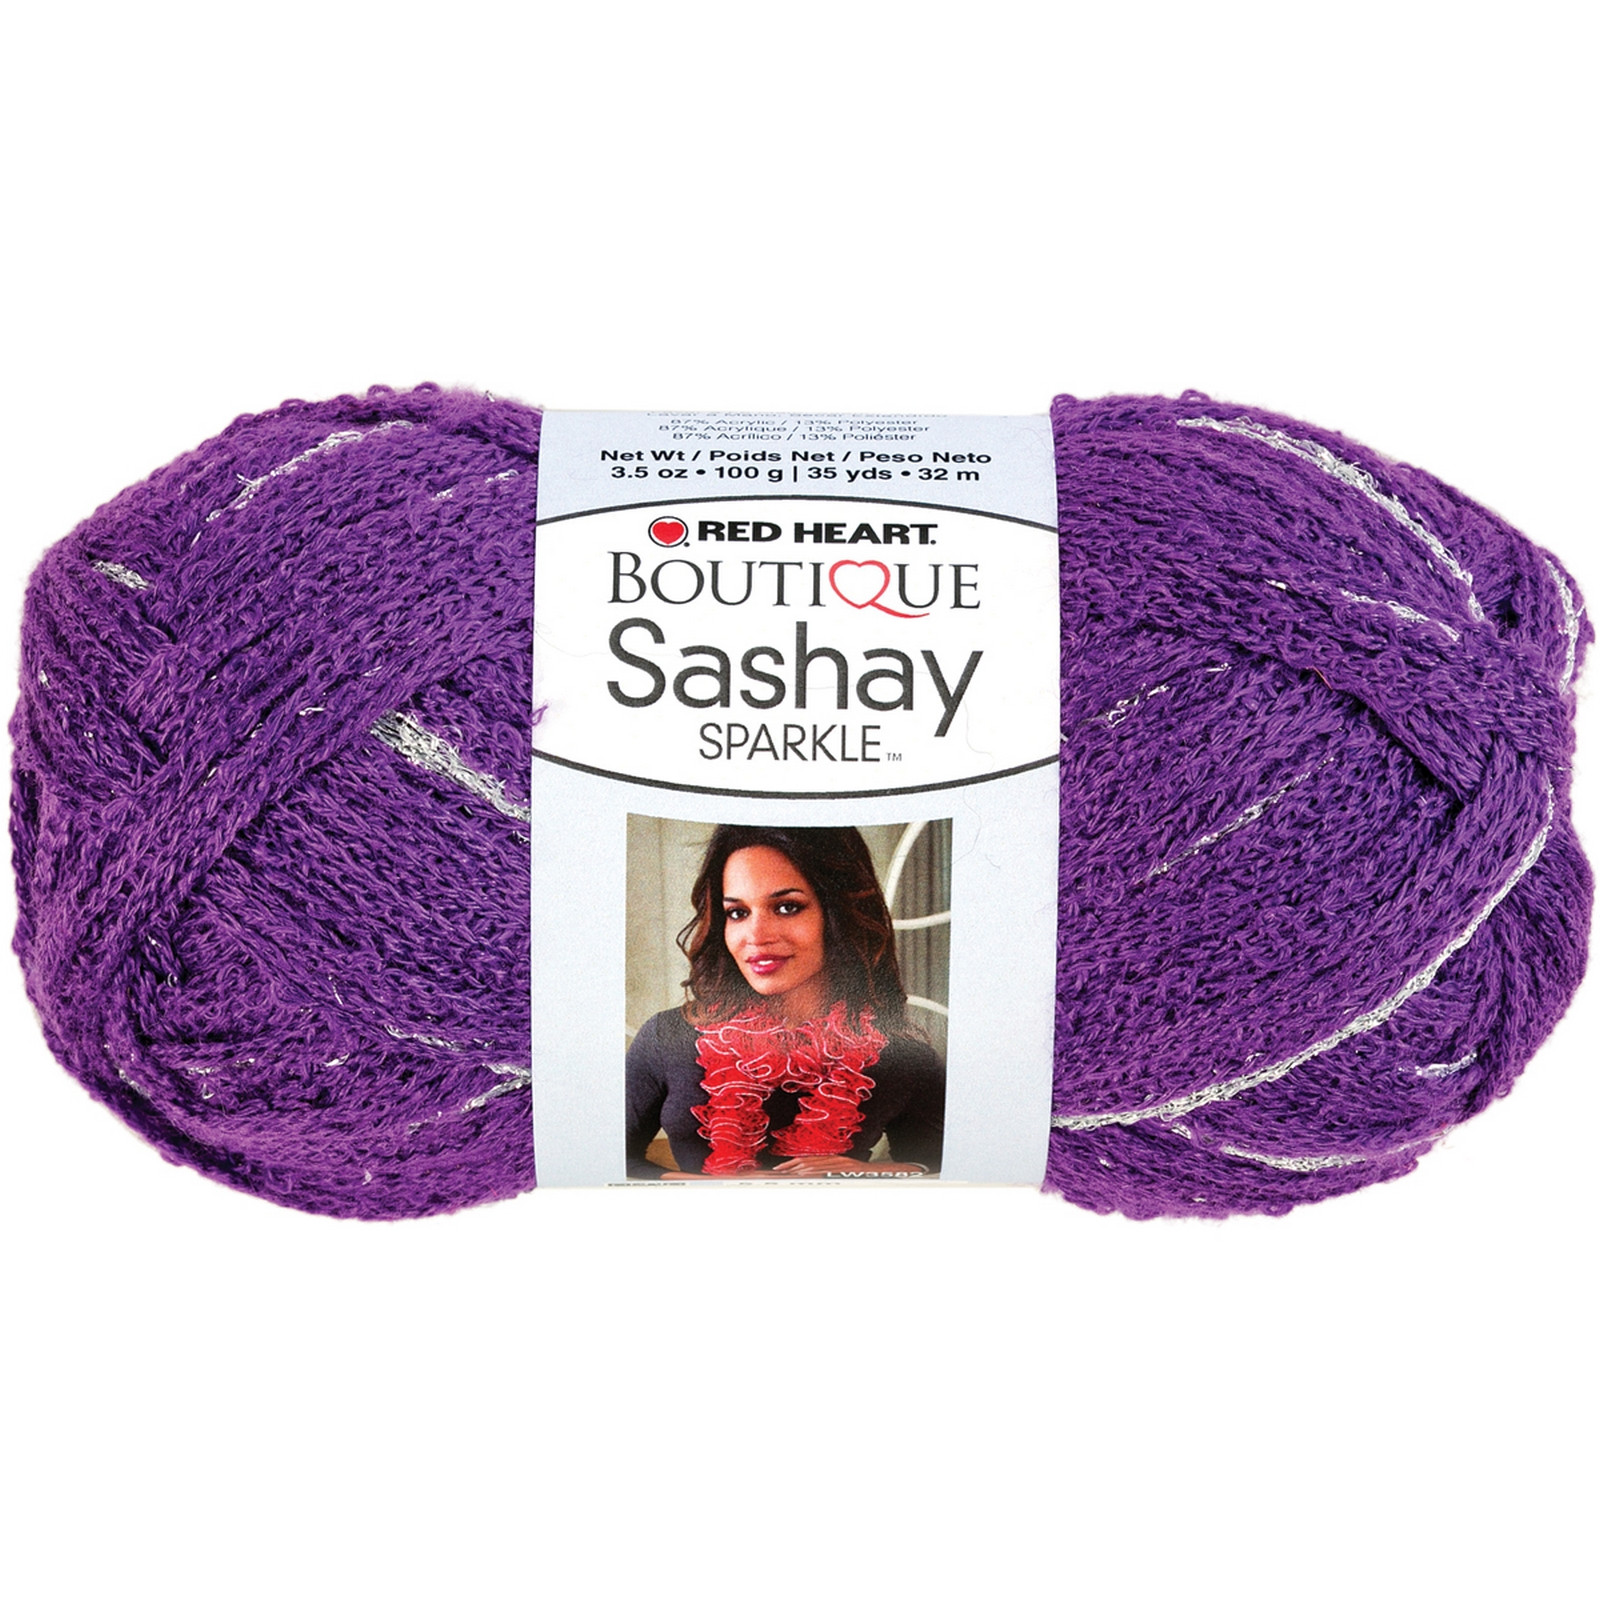 Awesome Red Heart Boutique Sashay Sparkle Yarn Lilac Home Red Heart Sparkle Yarn Of Top 49 Pics Red Heart Sparkle Yarn